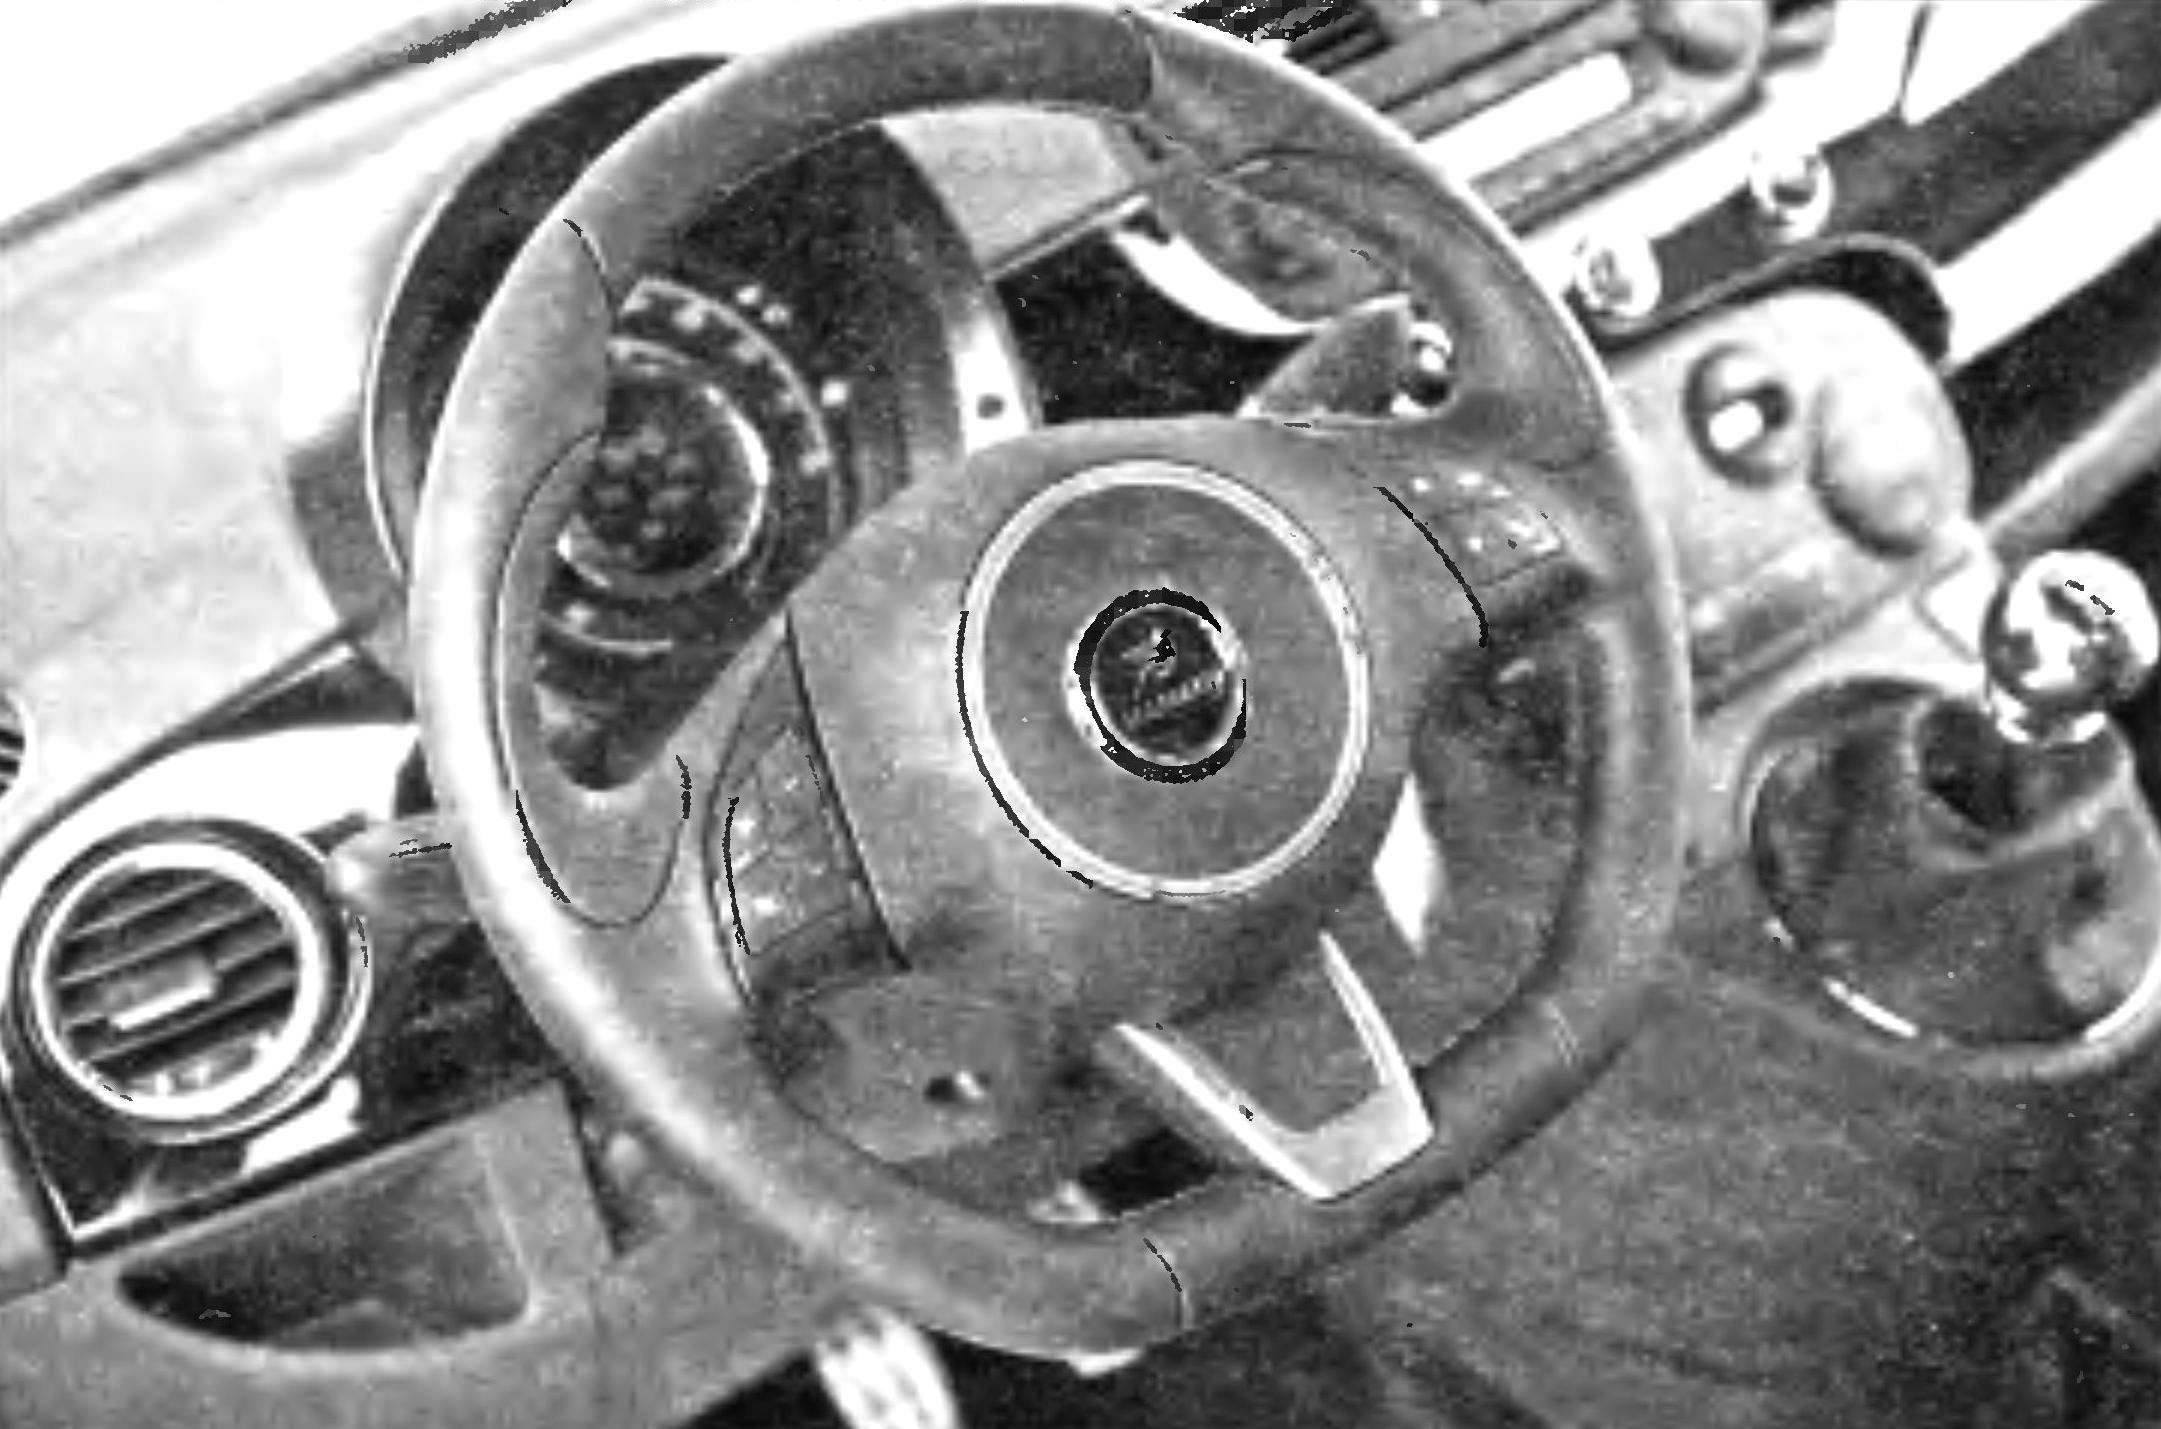 Front panel of the car